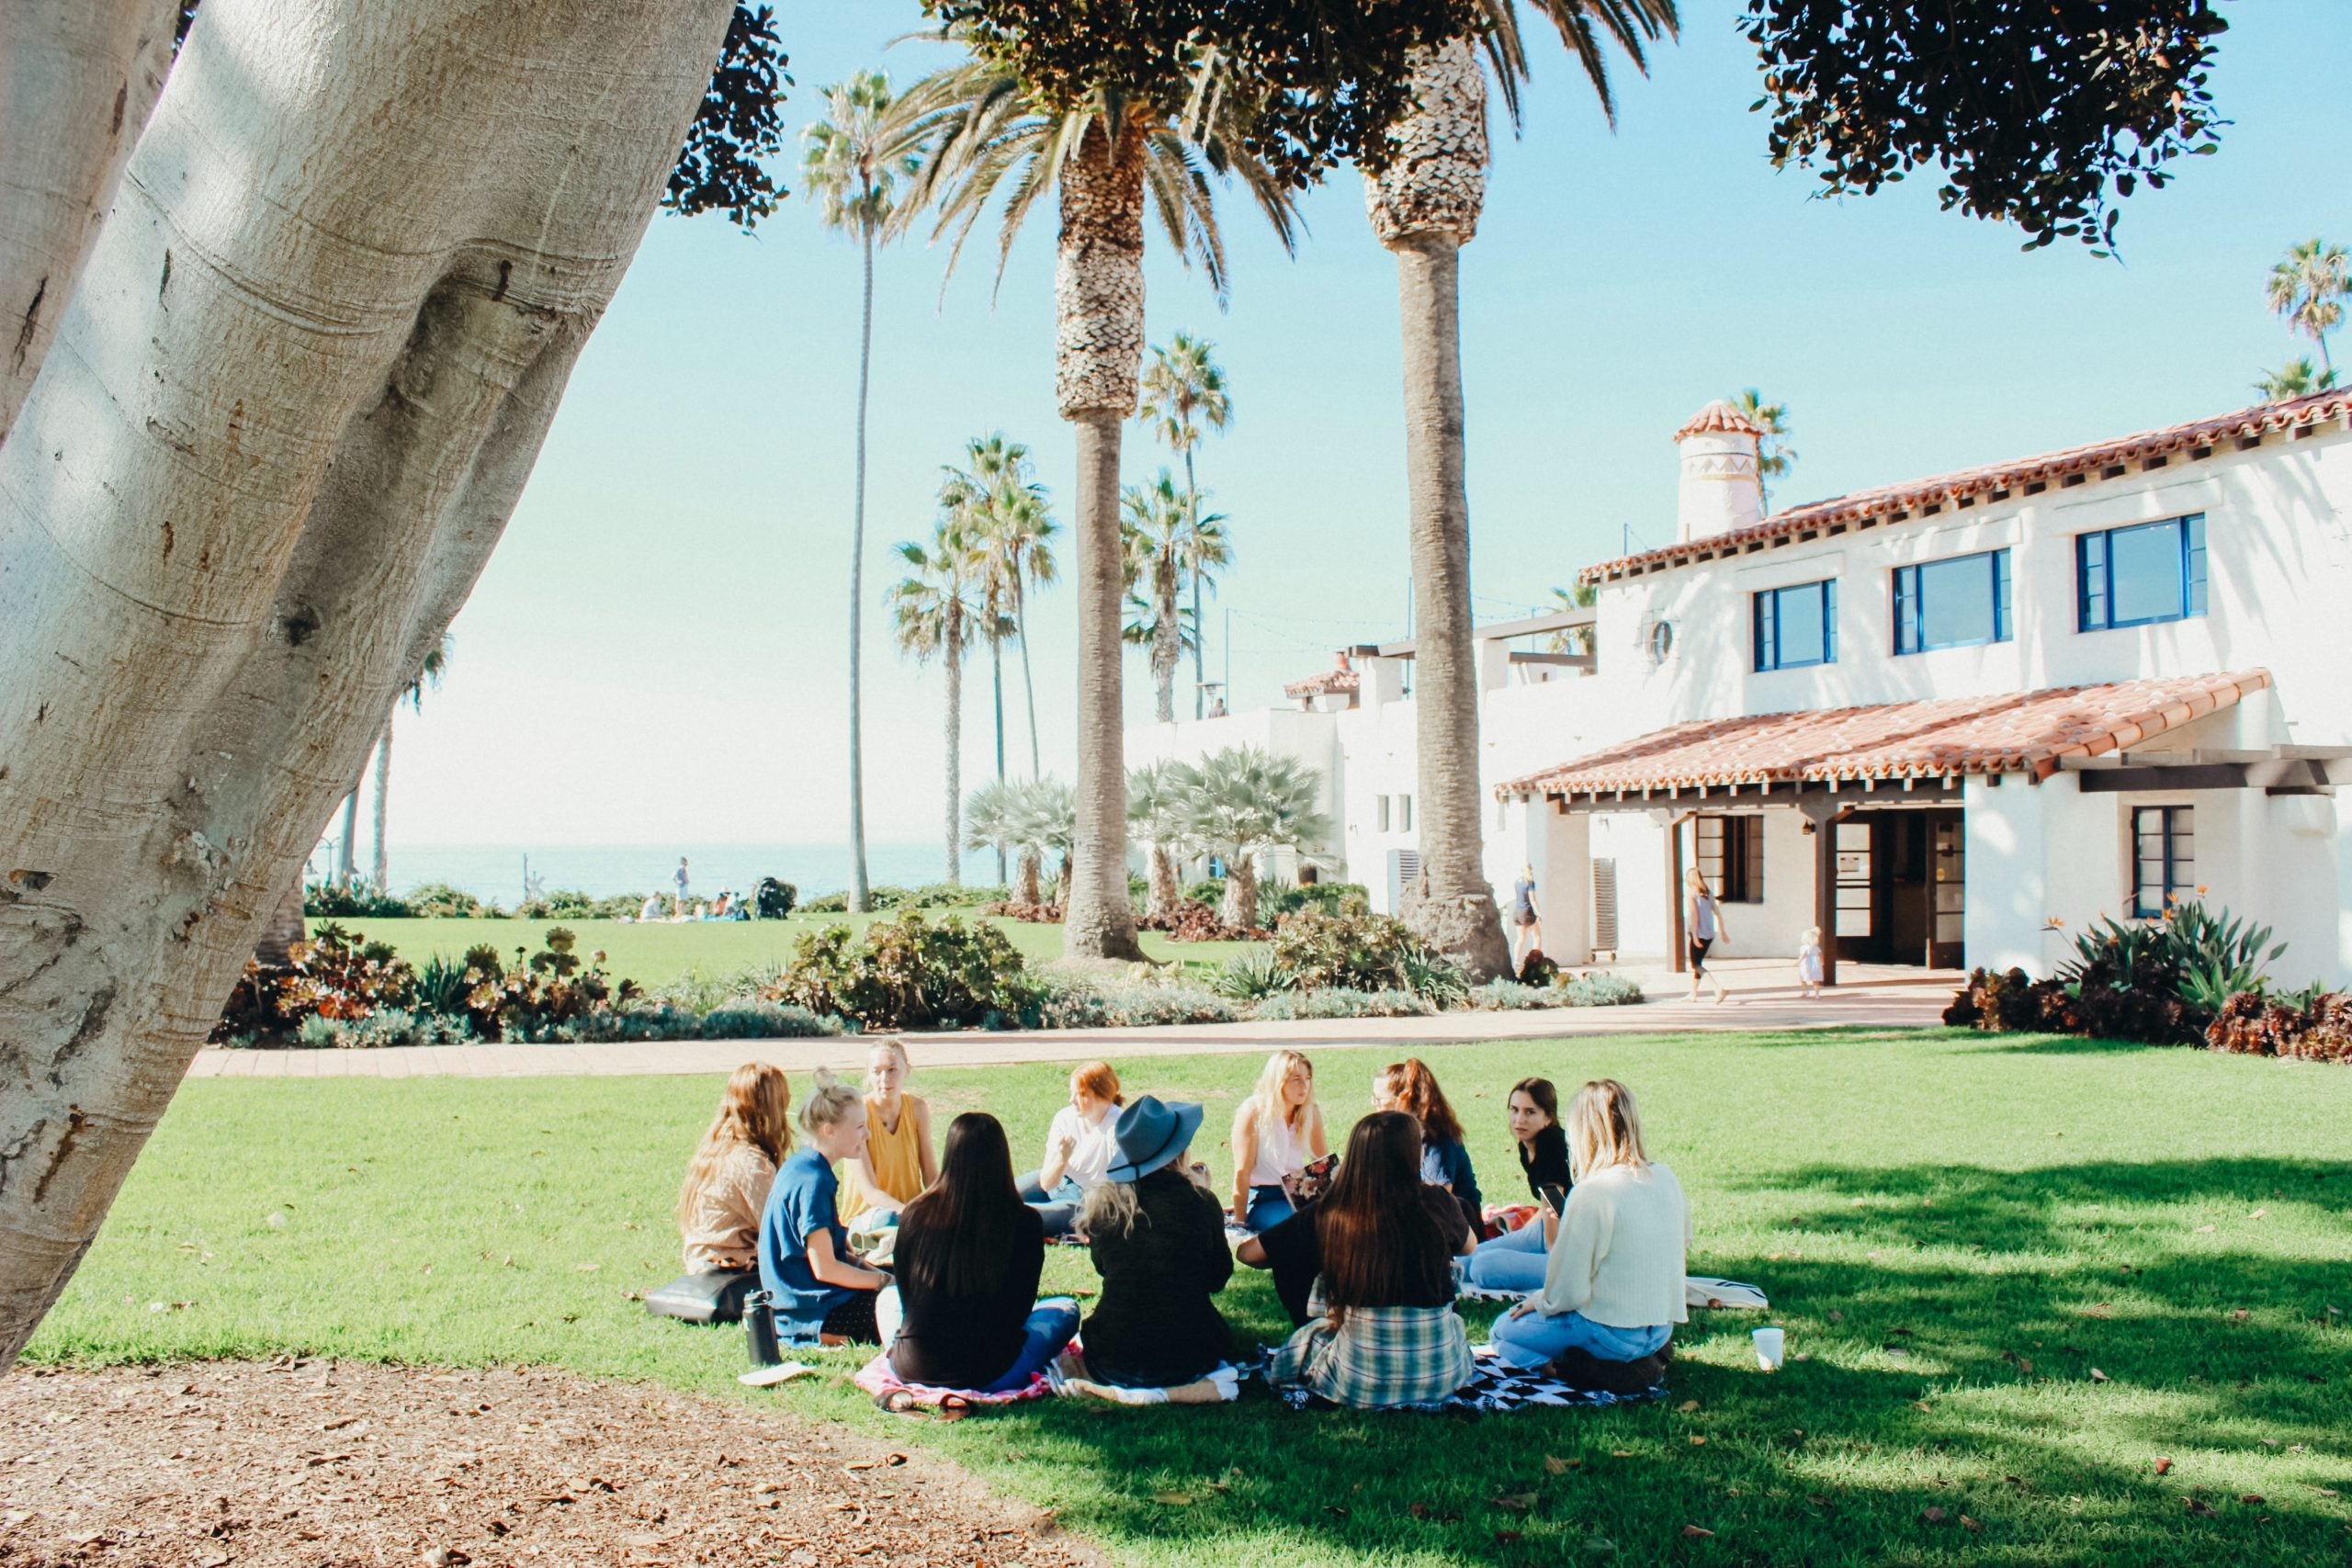 Students sitting in a circle on the lawn.